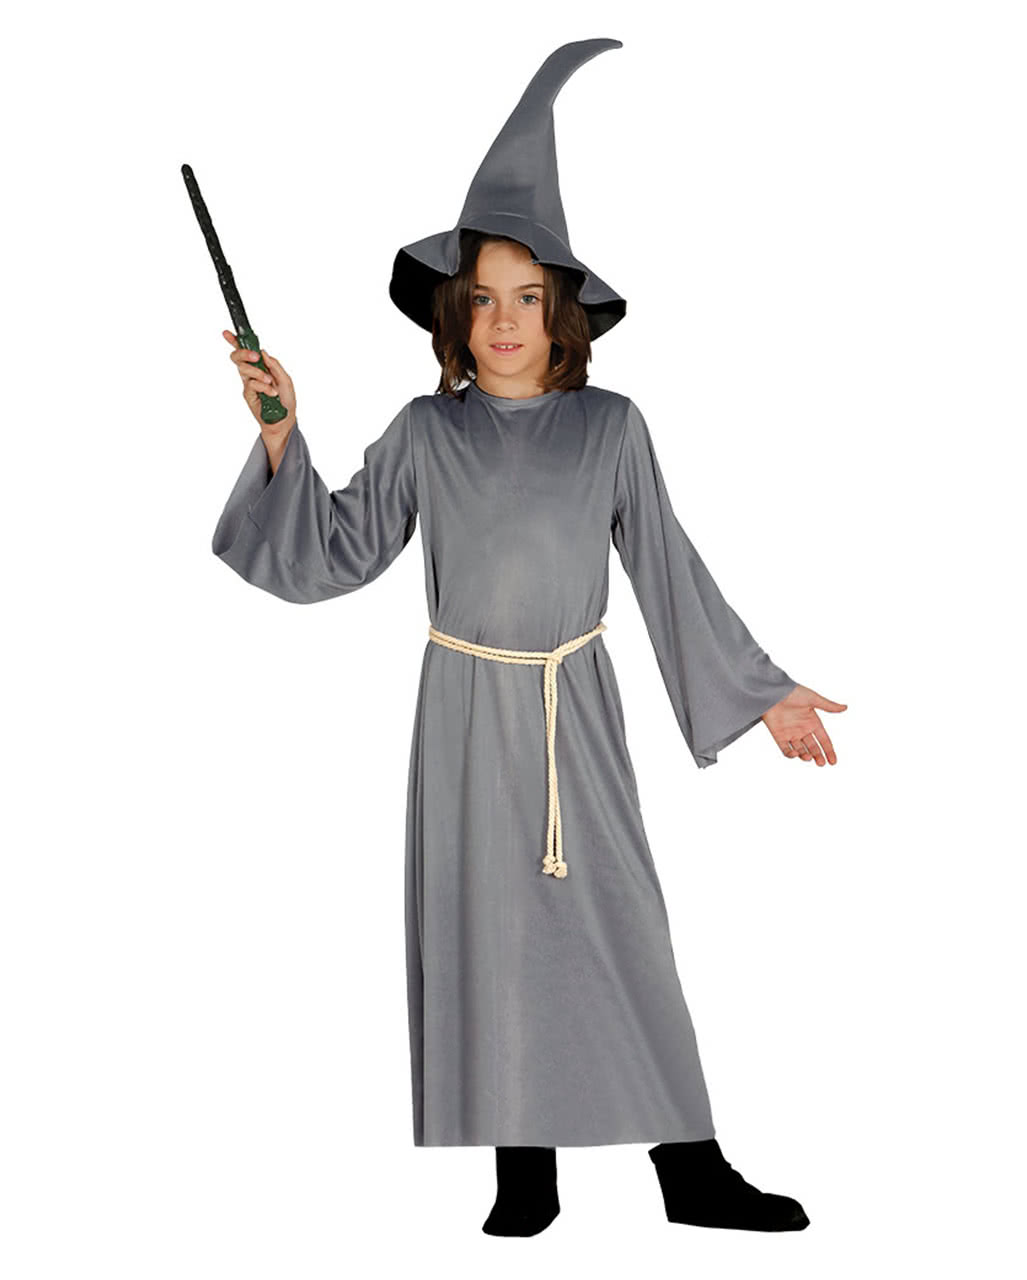 Fantasy wizard costume with hat | Weiser small Warlock | horror ...